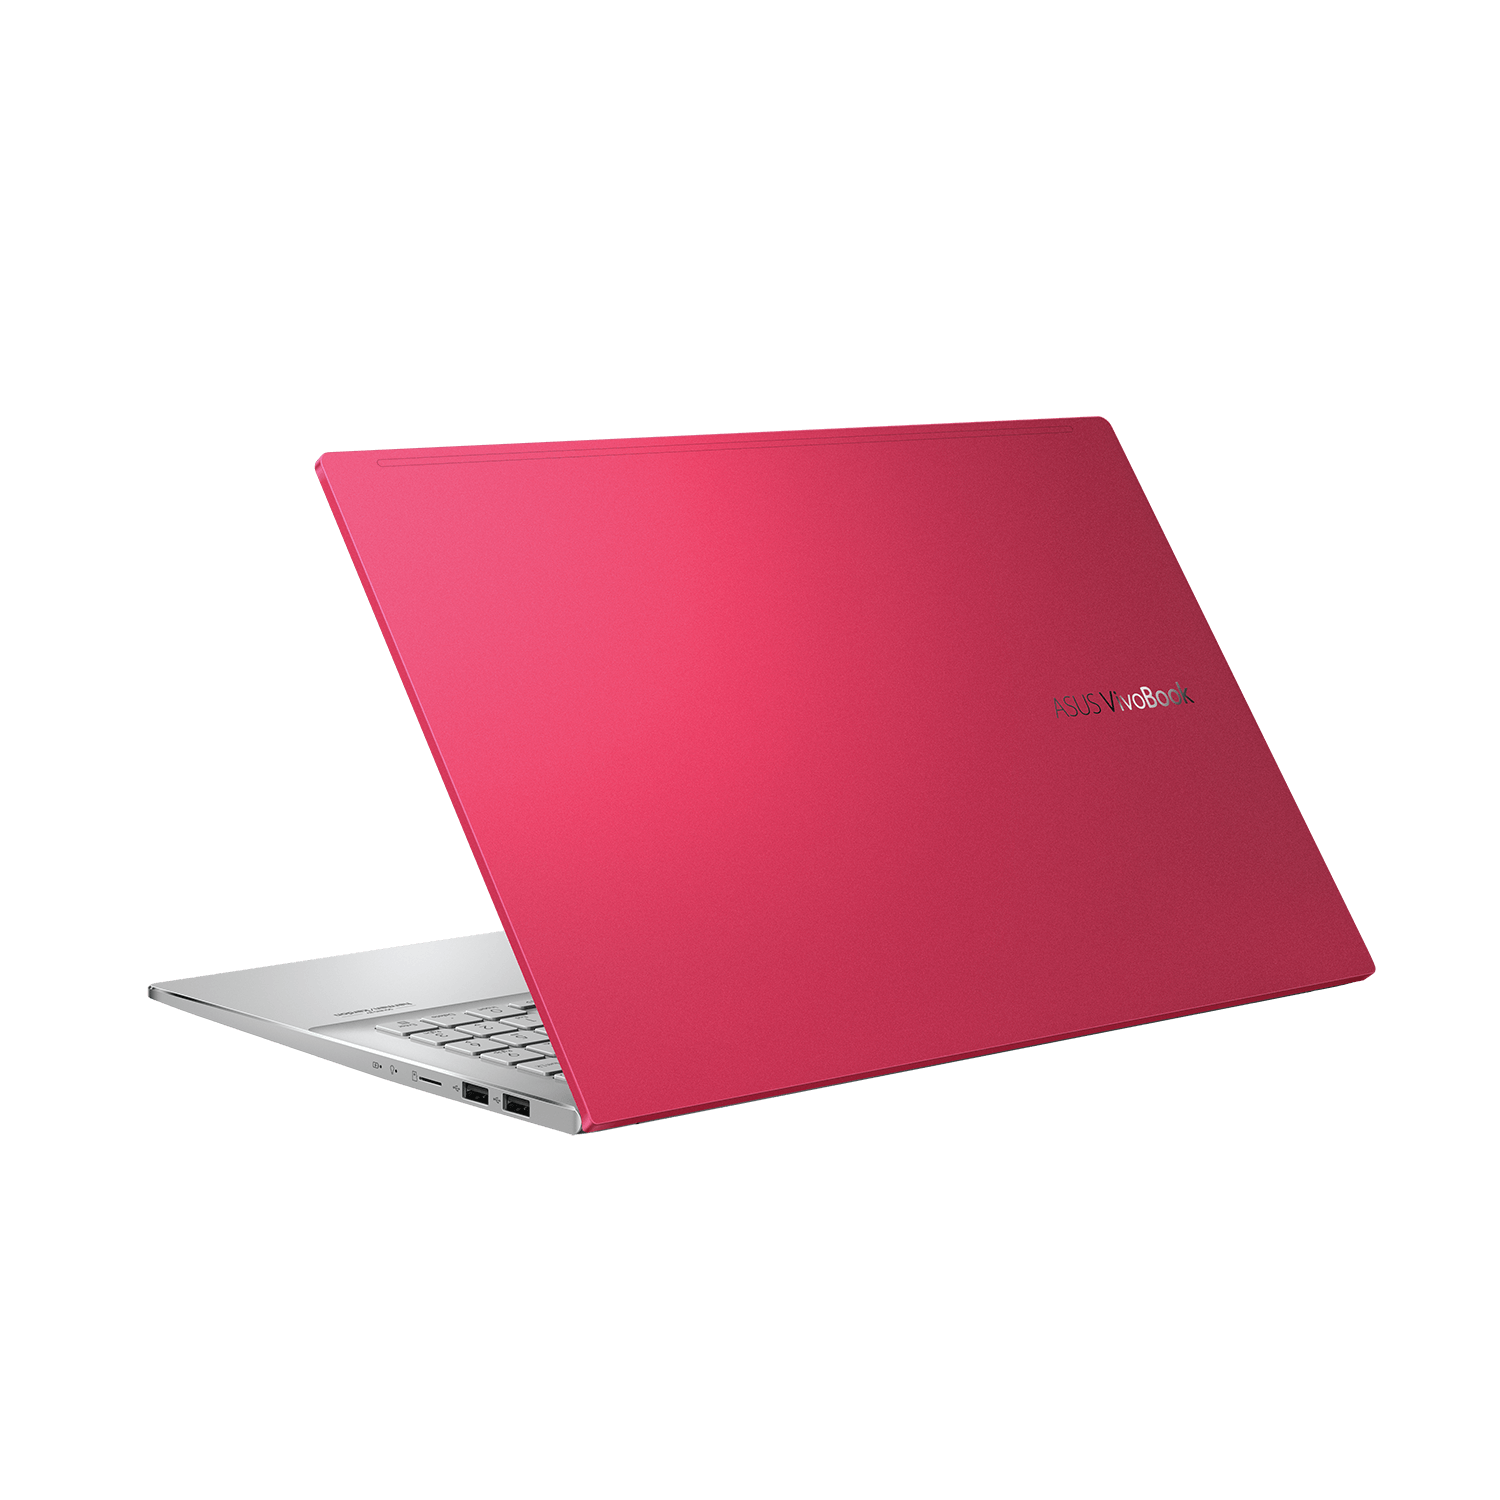 S533 Product photo red 10